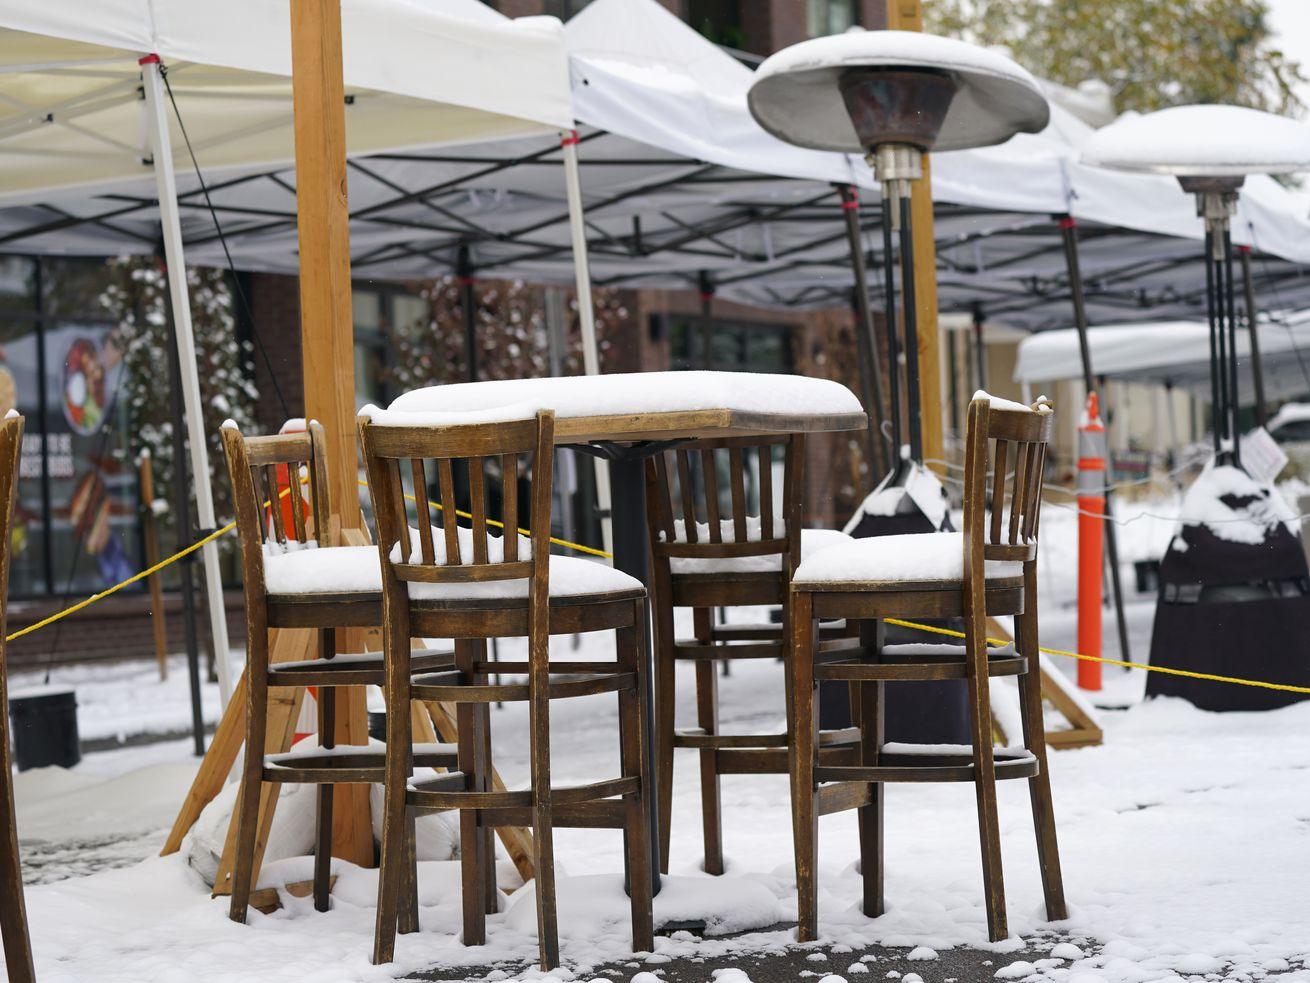 Will Chicagoans keep going to bars and restaurants now that they can offer only outdoor service?